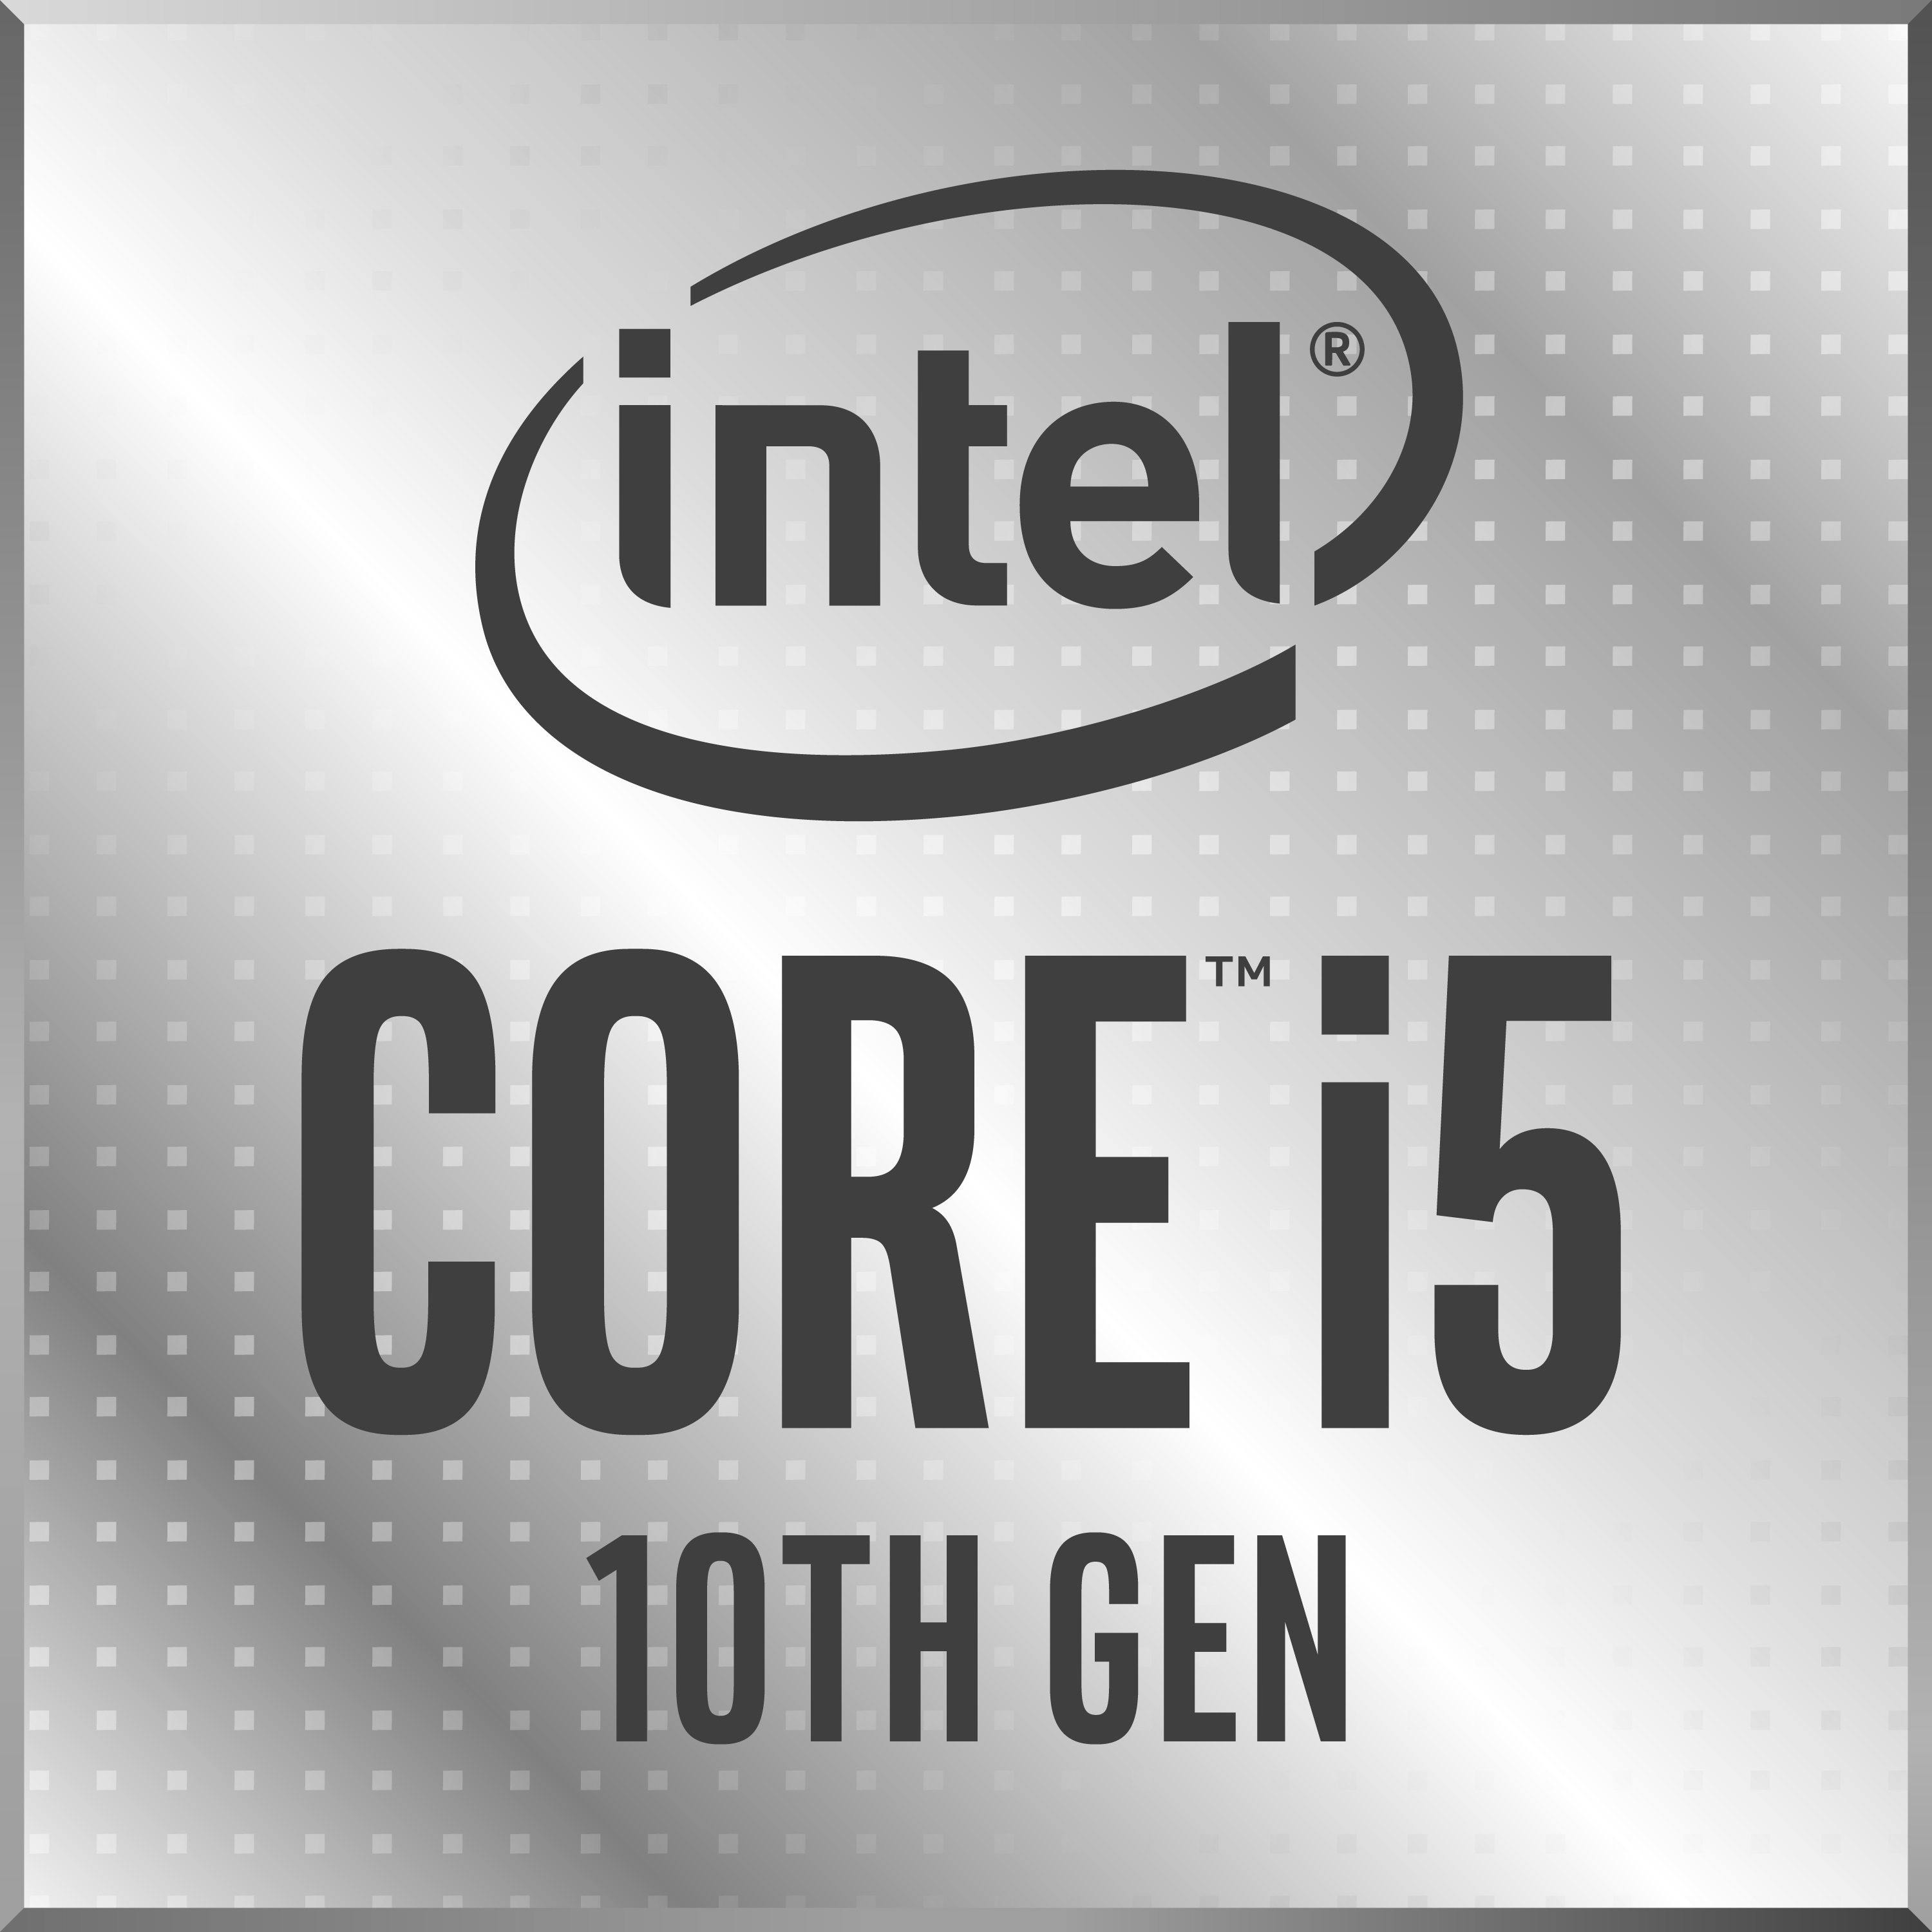 Intel-10th-Gen-Core-i5-badge